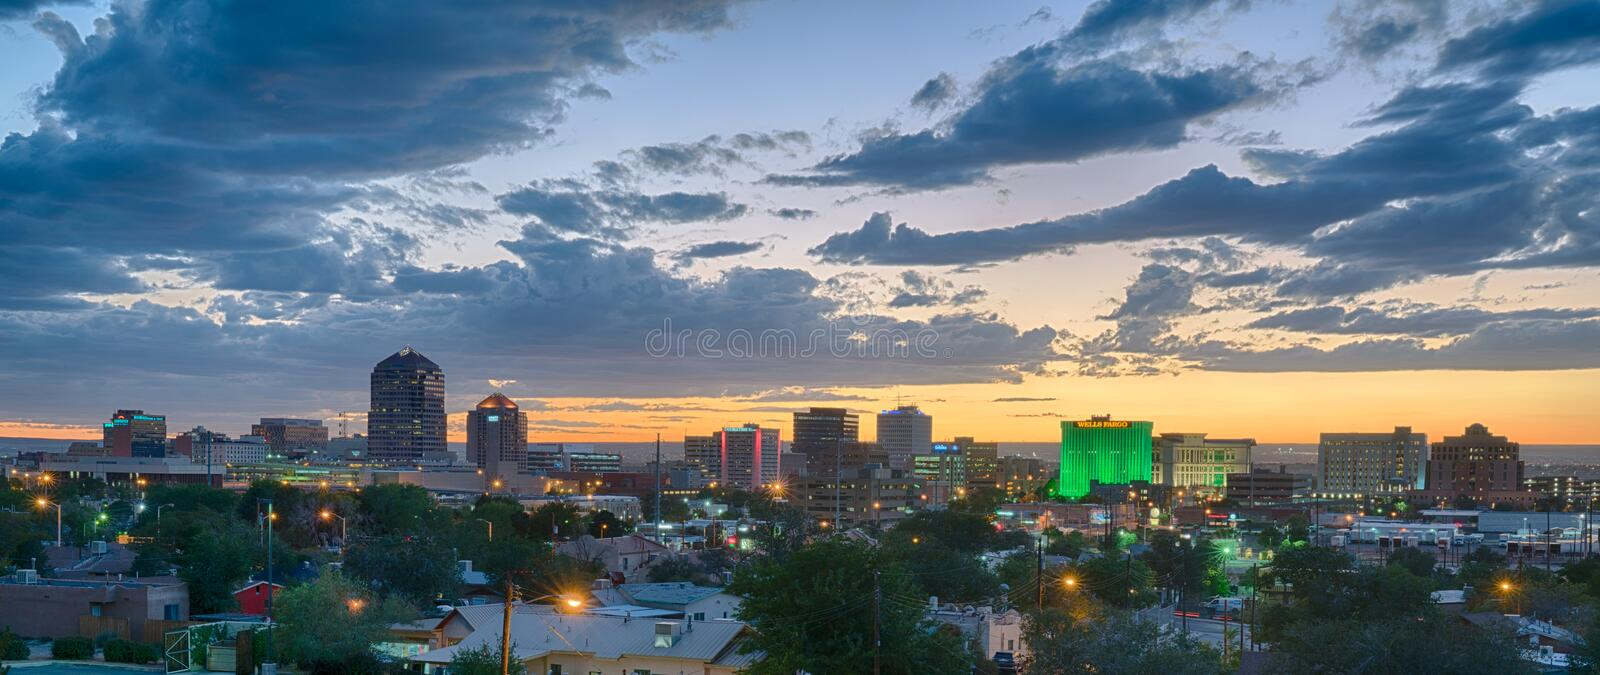 Albuquerque, New Mexico Skyline stock image